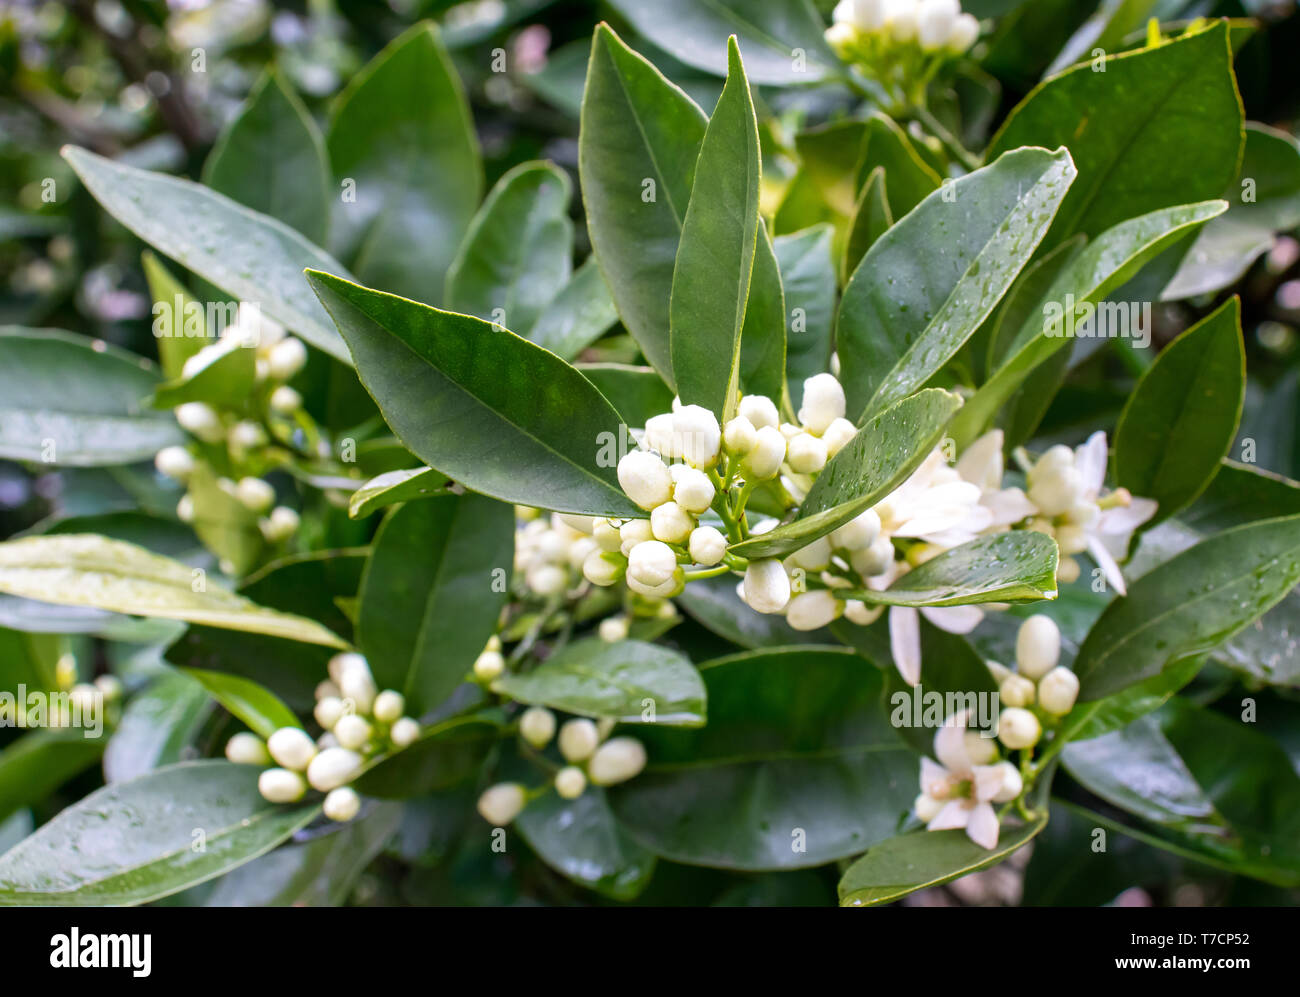 Orange tree white fragrant flowers and buds and dark green foliage after spring rain. Neroli blossom. Azahar parfum flowering. - Stock Image